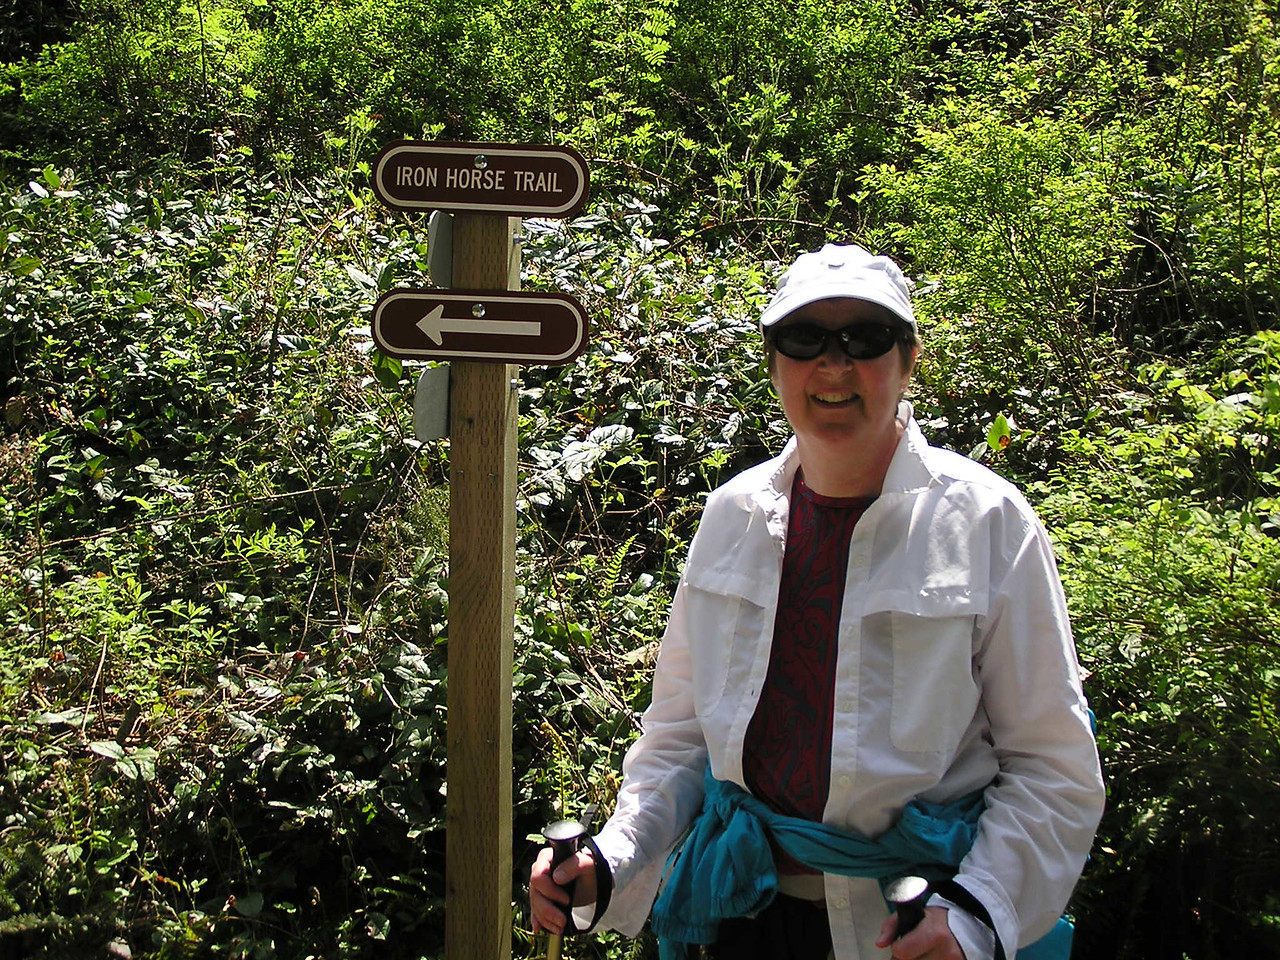 And the trail is named ... Iron Horse Trail.  Mary.